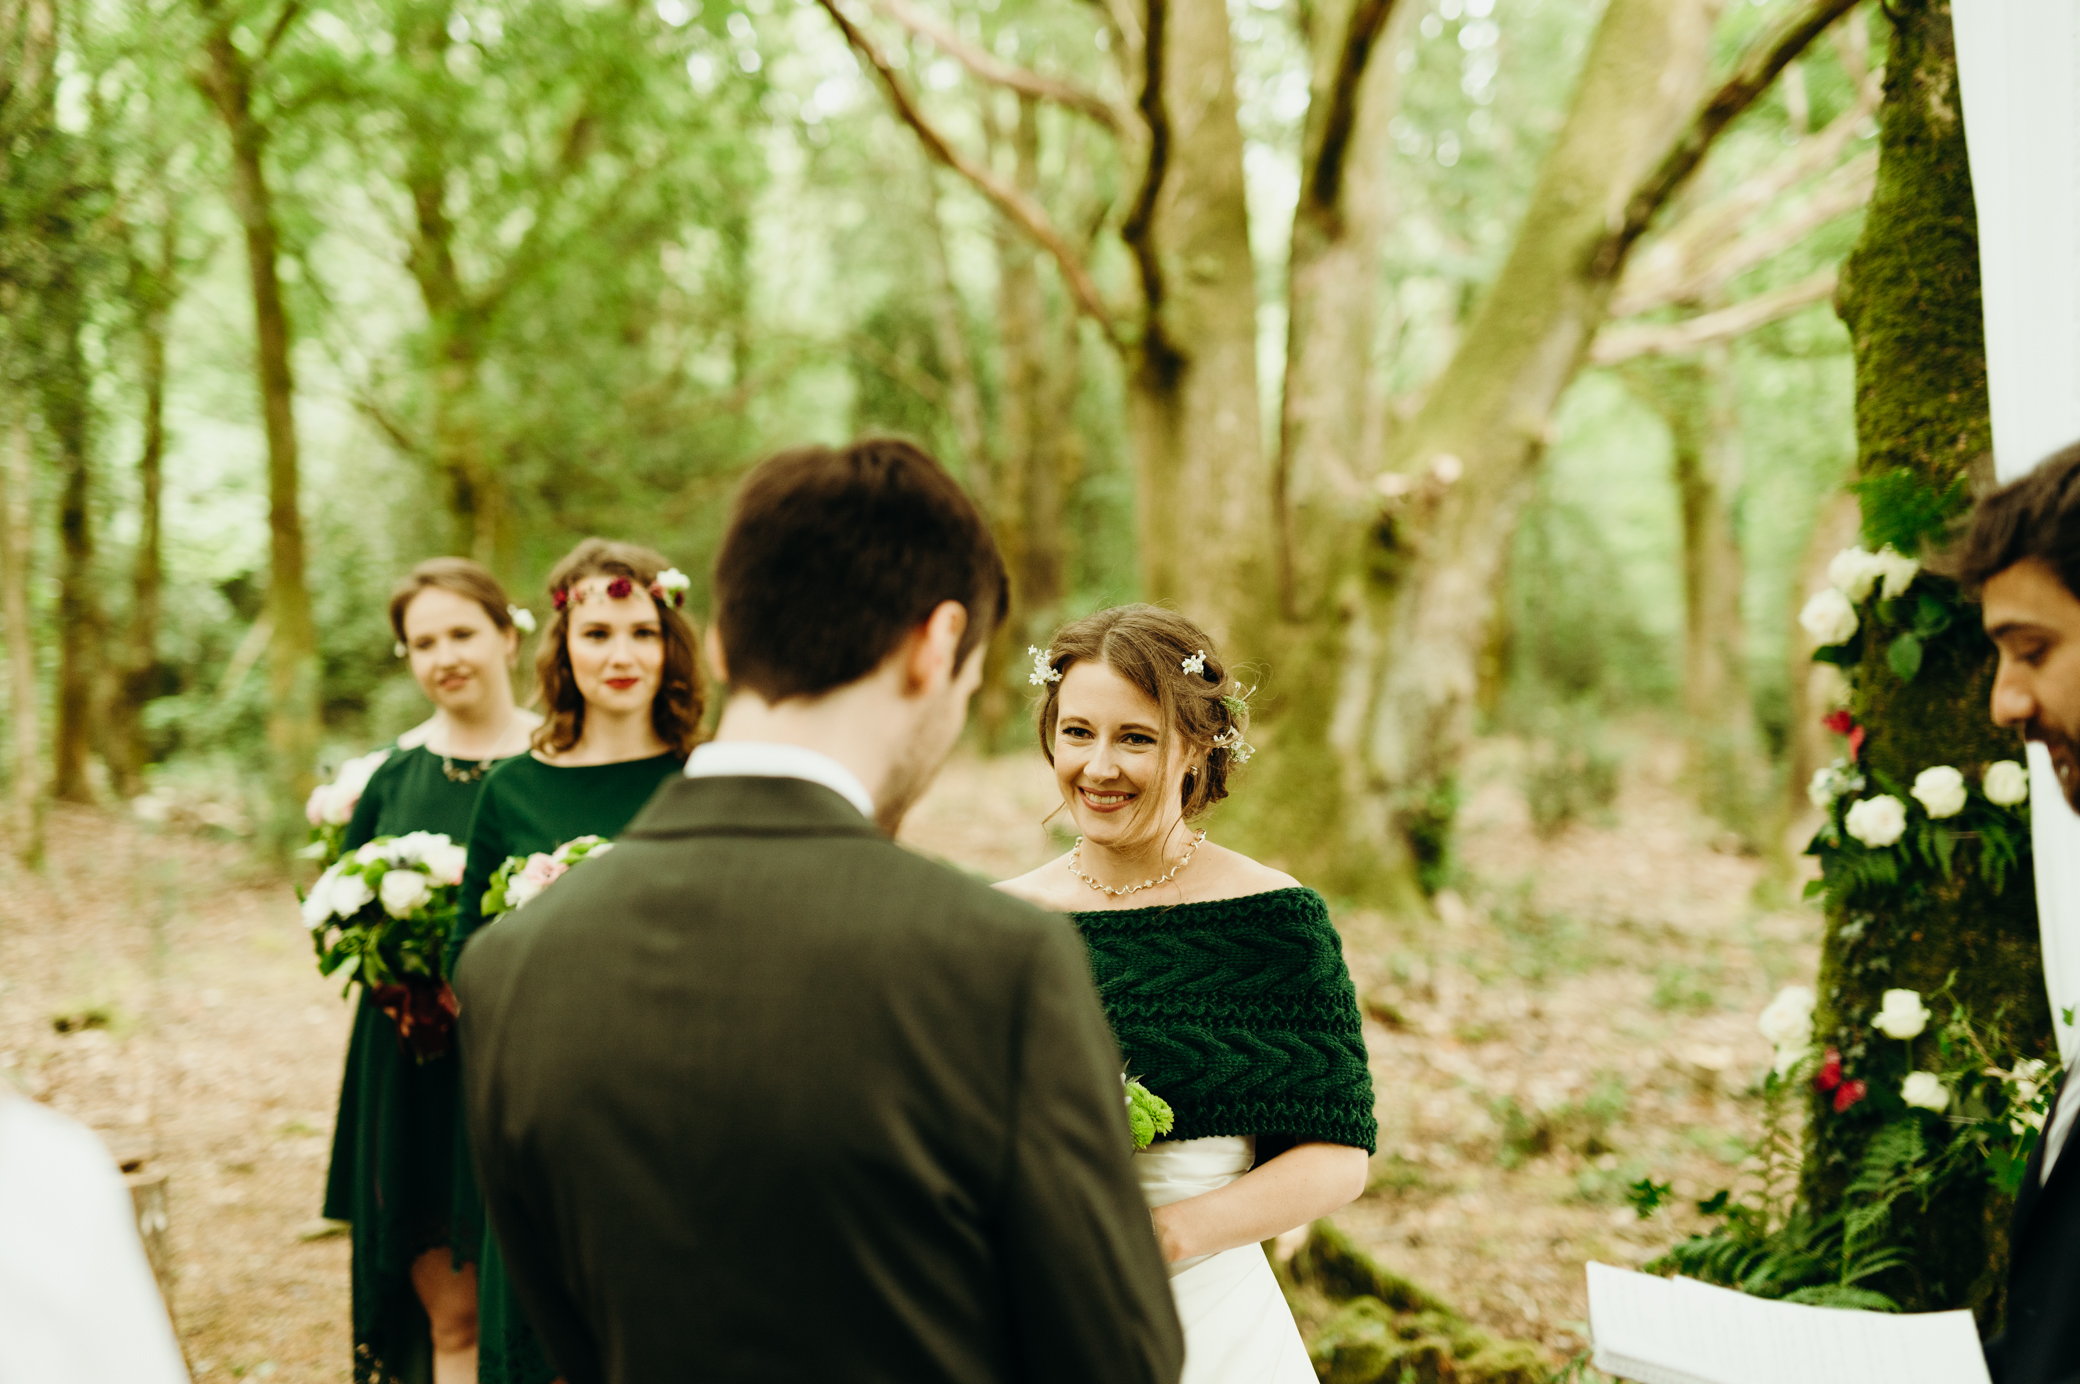 Alternative Wedding Ireland - Elopement photographer Ireland - Destination Photographer Europe-35.jpg